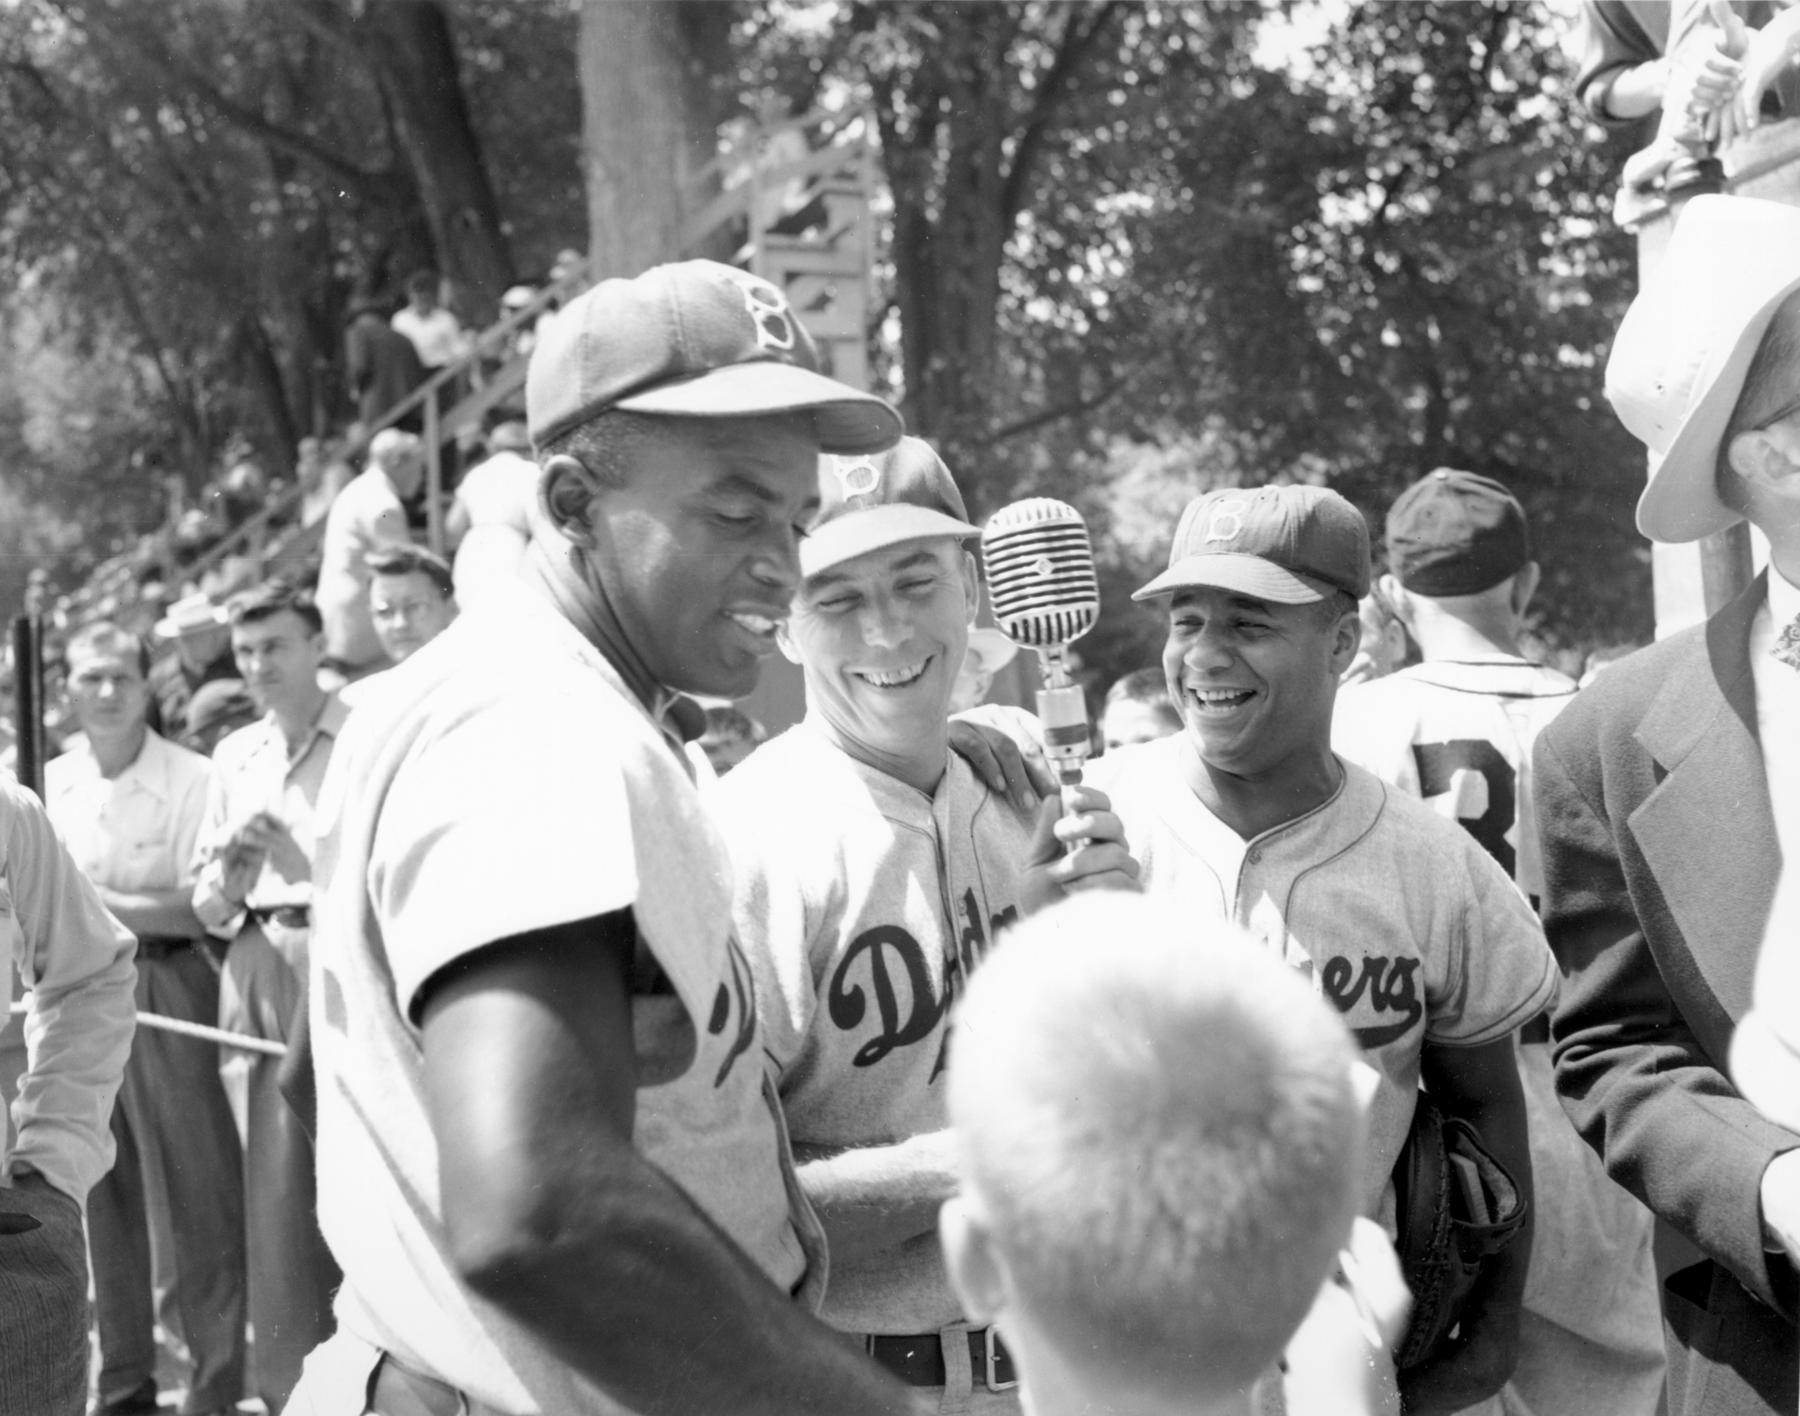 A trio of future Hall of Famers - the Brooklyn Dodgers's Jackie Robinson, Pee Wee Reese and Roy Campanella - surround a microphone at the 1951 Hall of Fame Game in Cooperstown. BL-595.2005.9 (Nationals Baseball Hall of Fame Library)